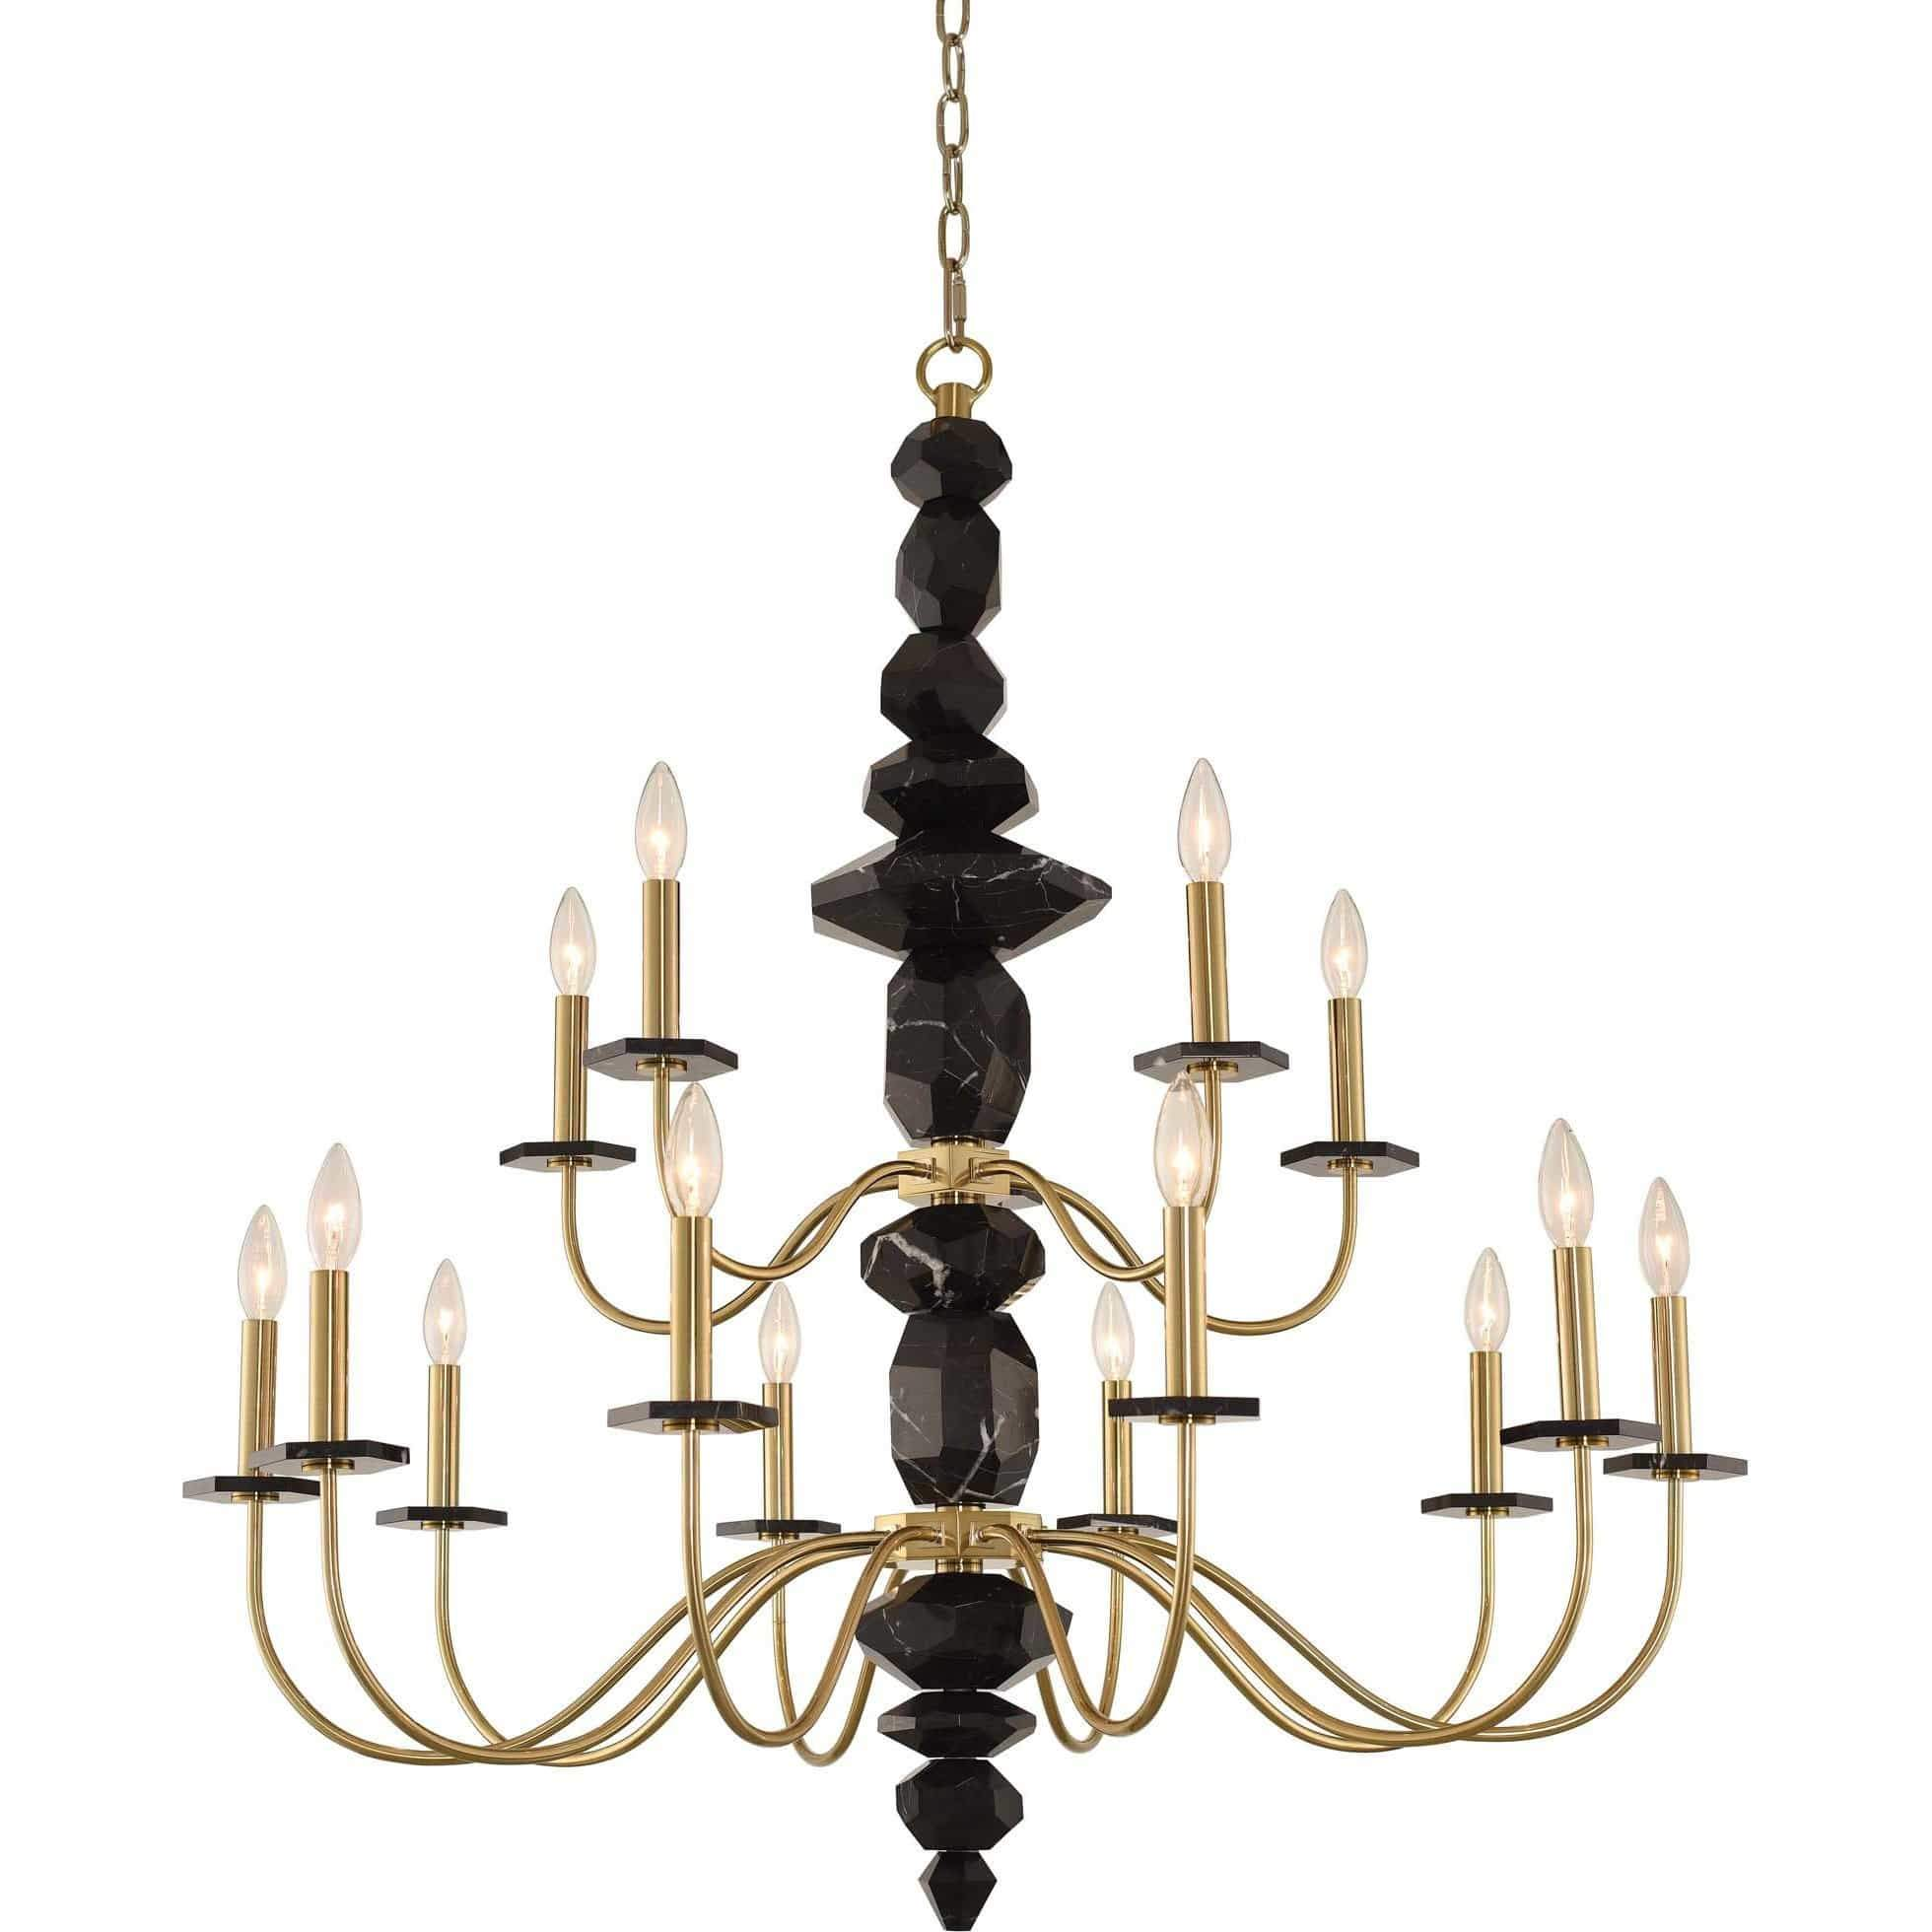 Allegri by Kalco Lighting Chandeliers Brushed Brass / N/A Piedra (10+5) Light 2 Tier Chandelier From Allegri by Kalco Lighting 031552